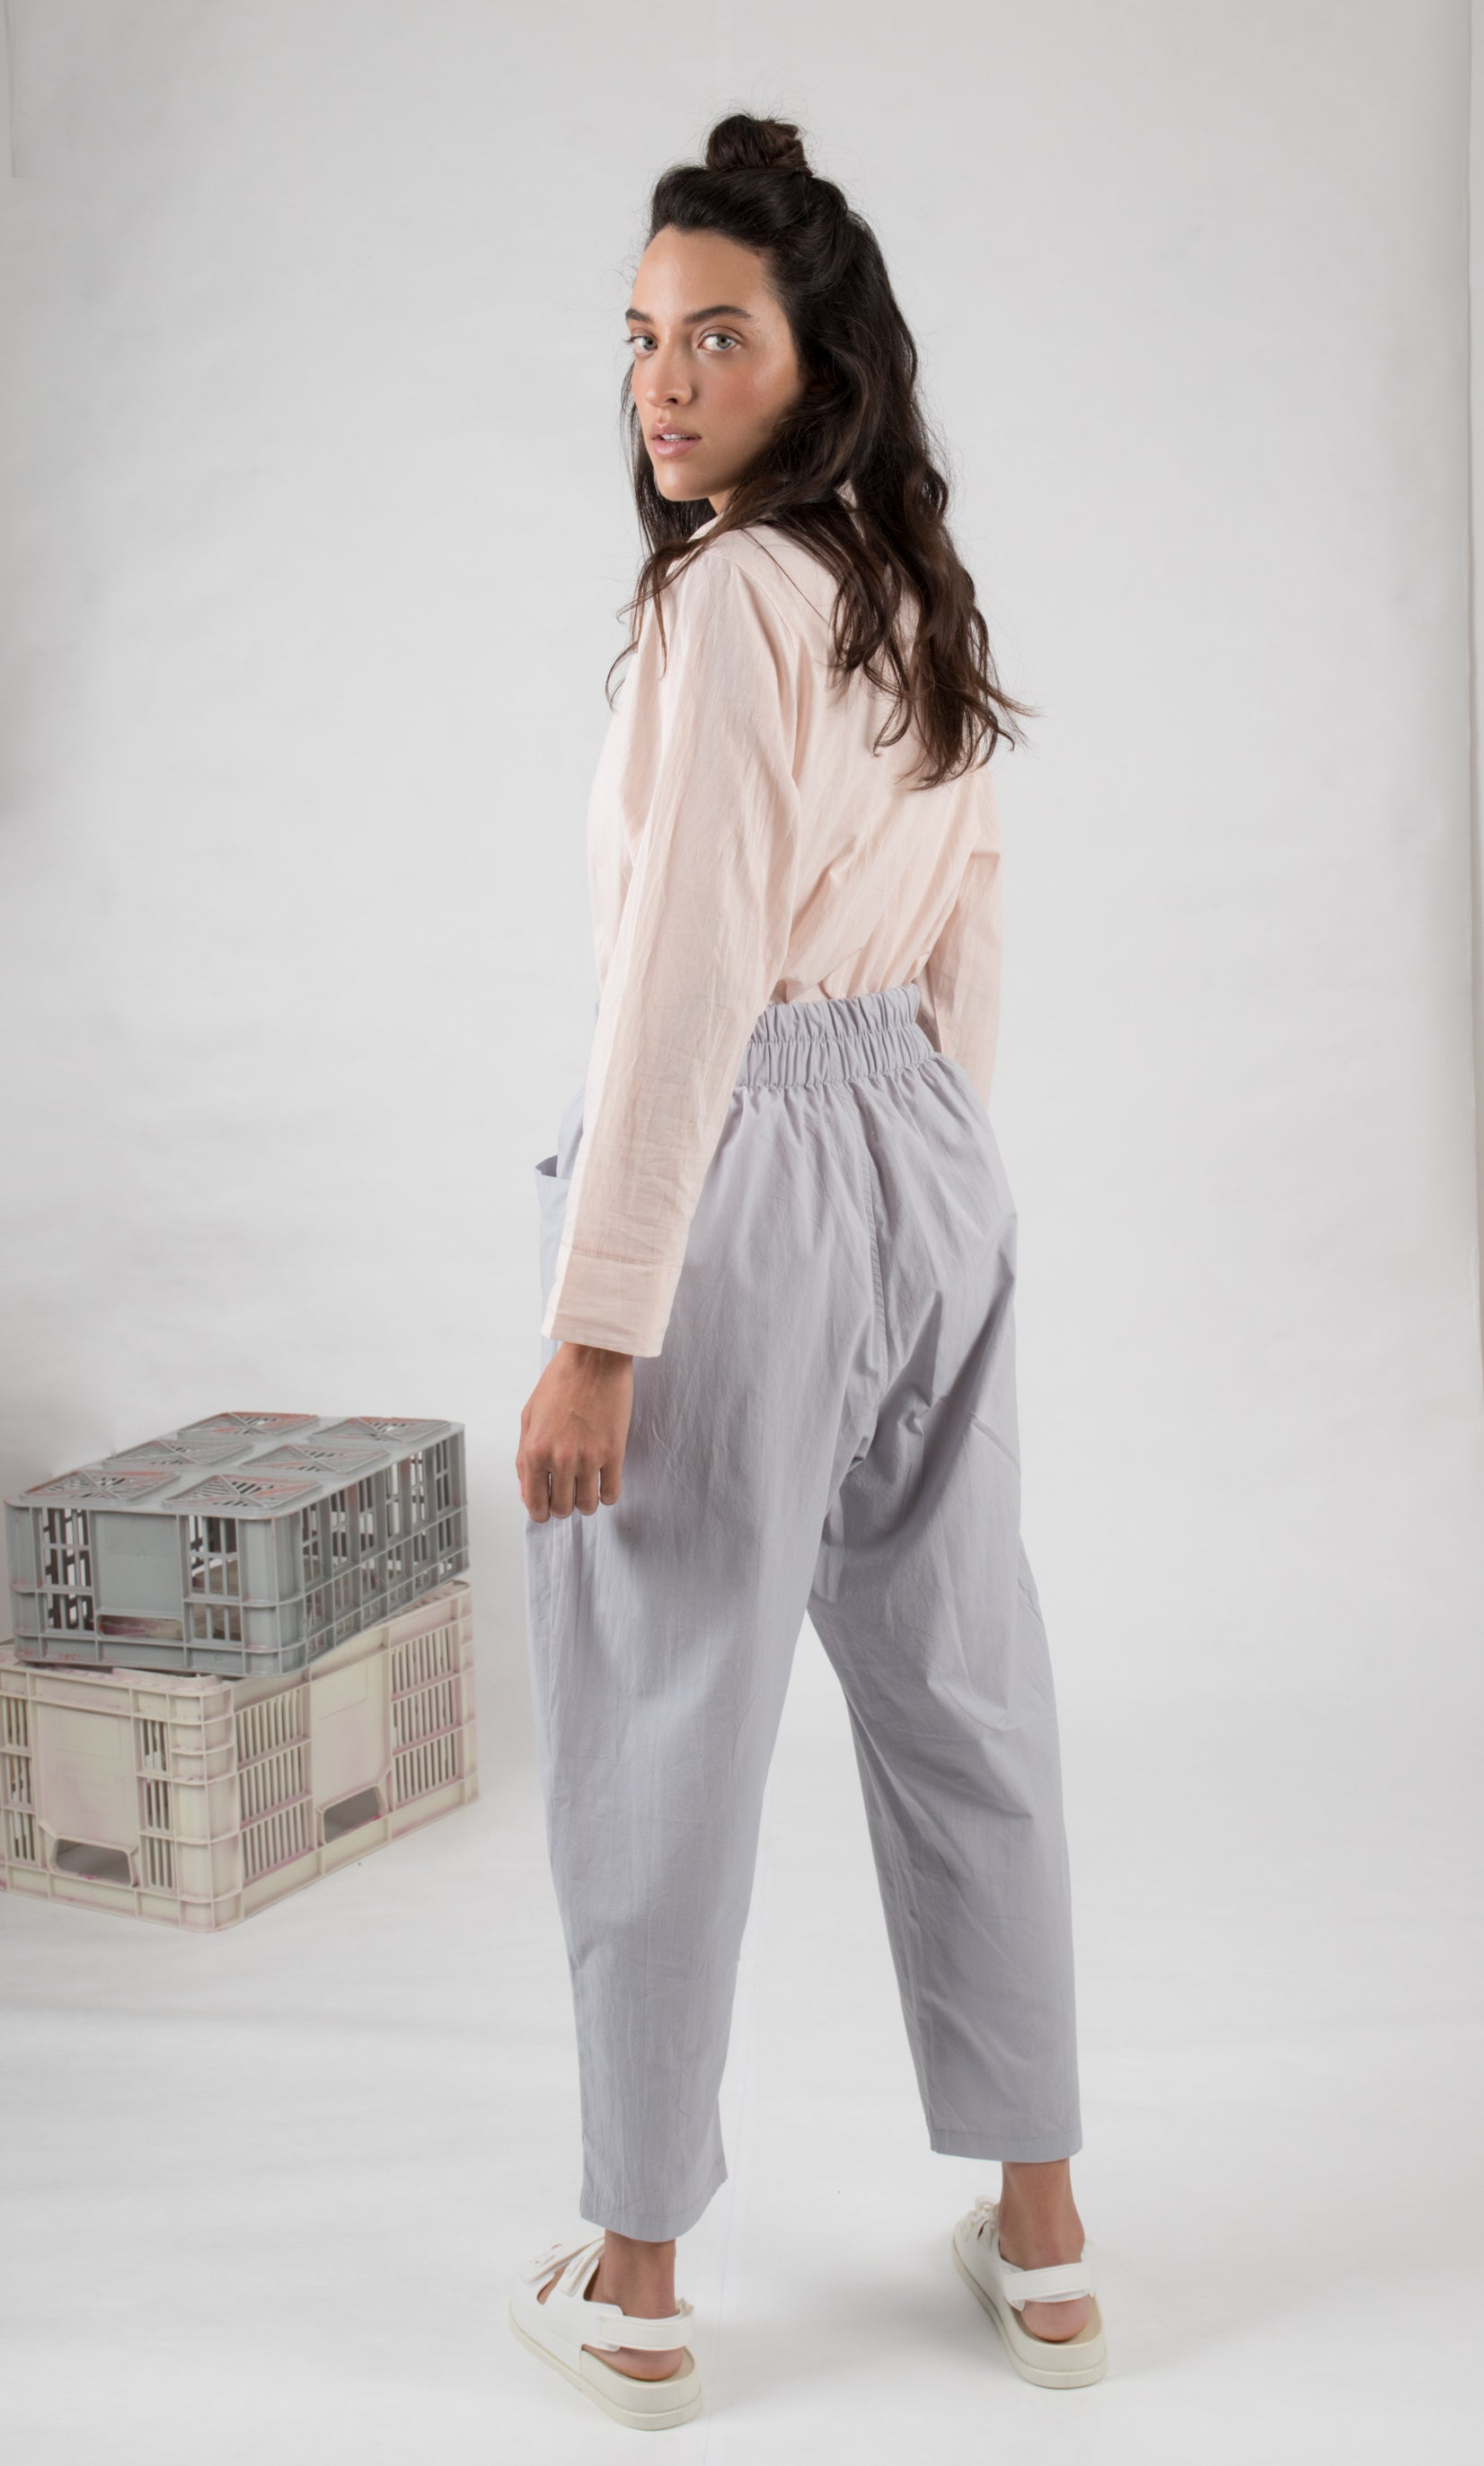 PALE GRAY baggy pants